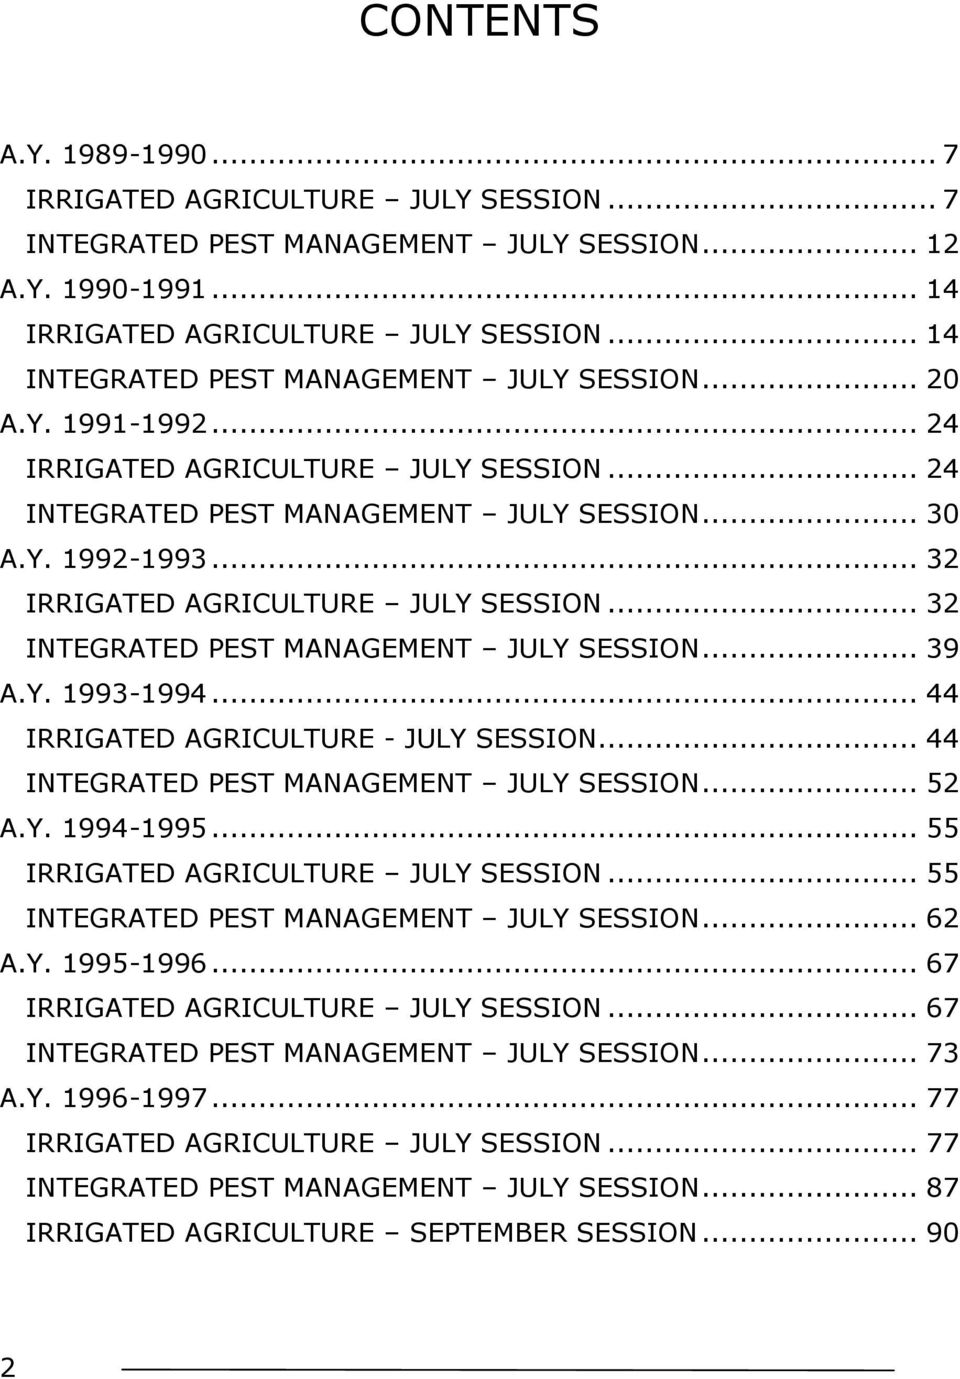 .. 32 IRRIGATED AGRICULTURE JULY SESSION... 32 INTEGRATED PEST MANAGEMENT JULY SESSION... 39 A.Y. 1993-1994... 44 IRRIGATED AGRICULTURE - JULY SESSION... 44 INTEGRATED PEST MANAGEMENT JULY SESSION.